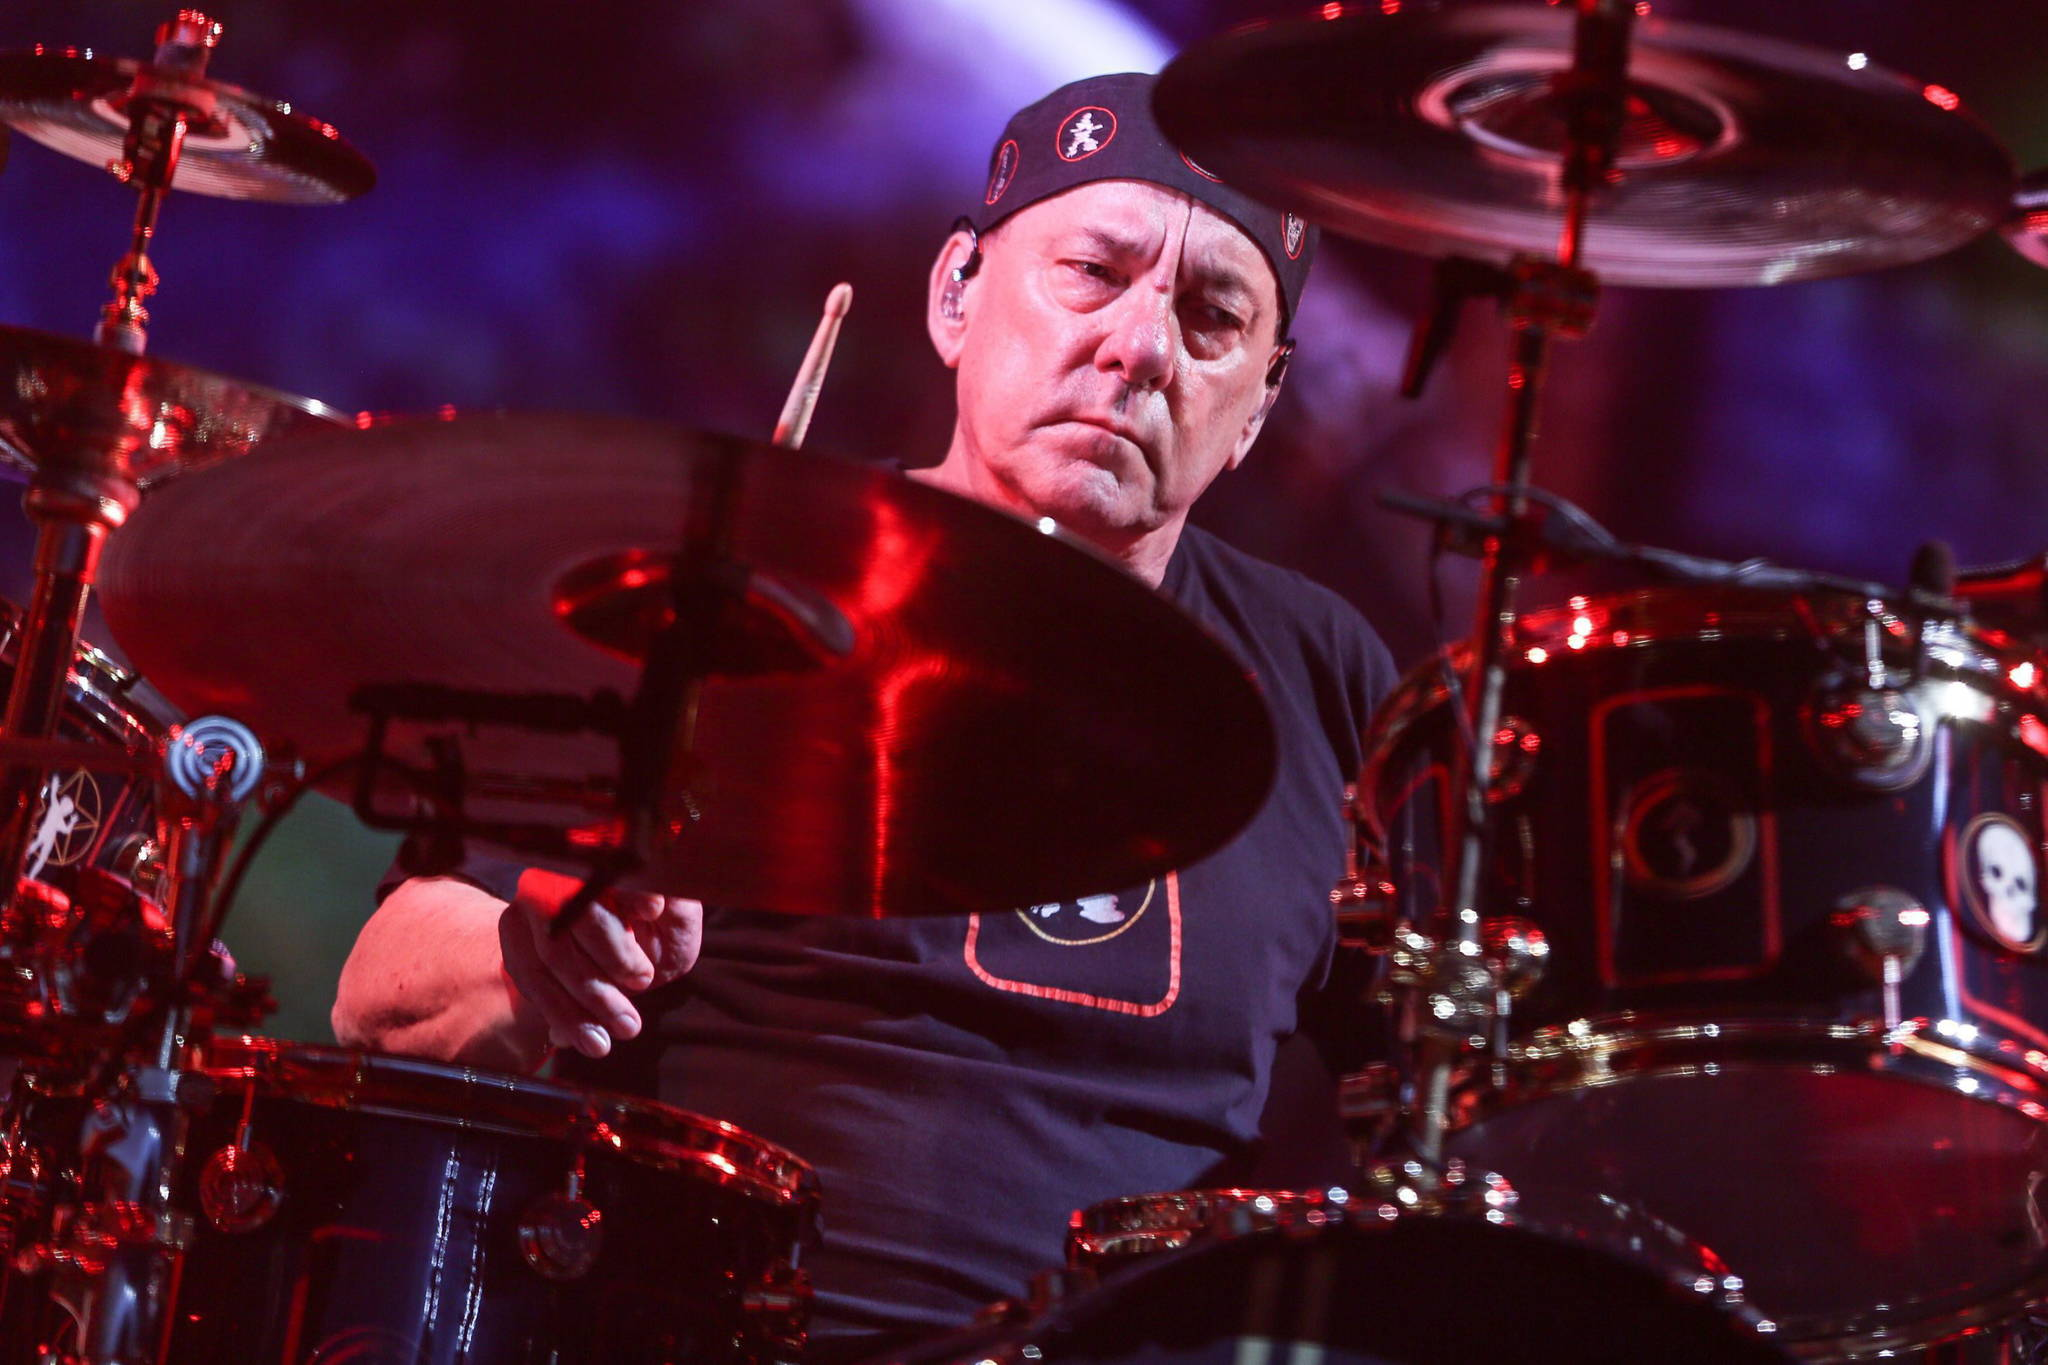 Neil Peart of Rush performs during the final show of the R40 Tour at The Forum on Saturday, Aug. 1, 2015, in Los Angeles. (Rich Fury/Invision/AP)